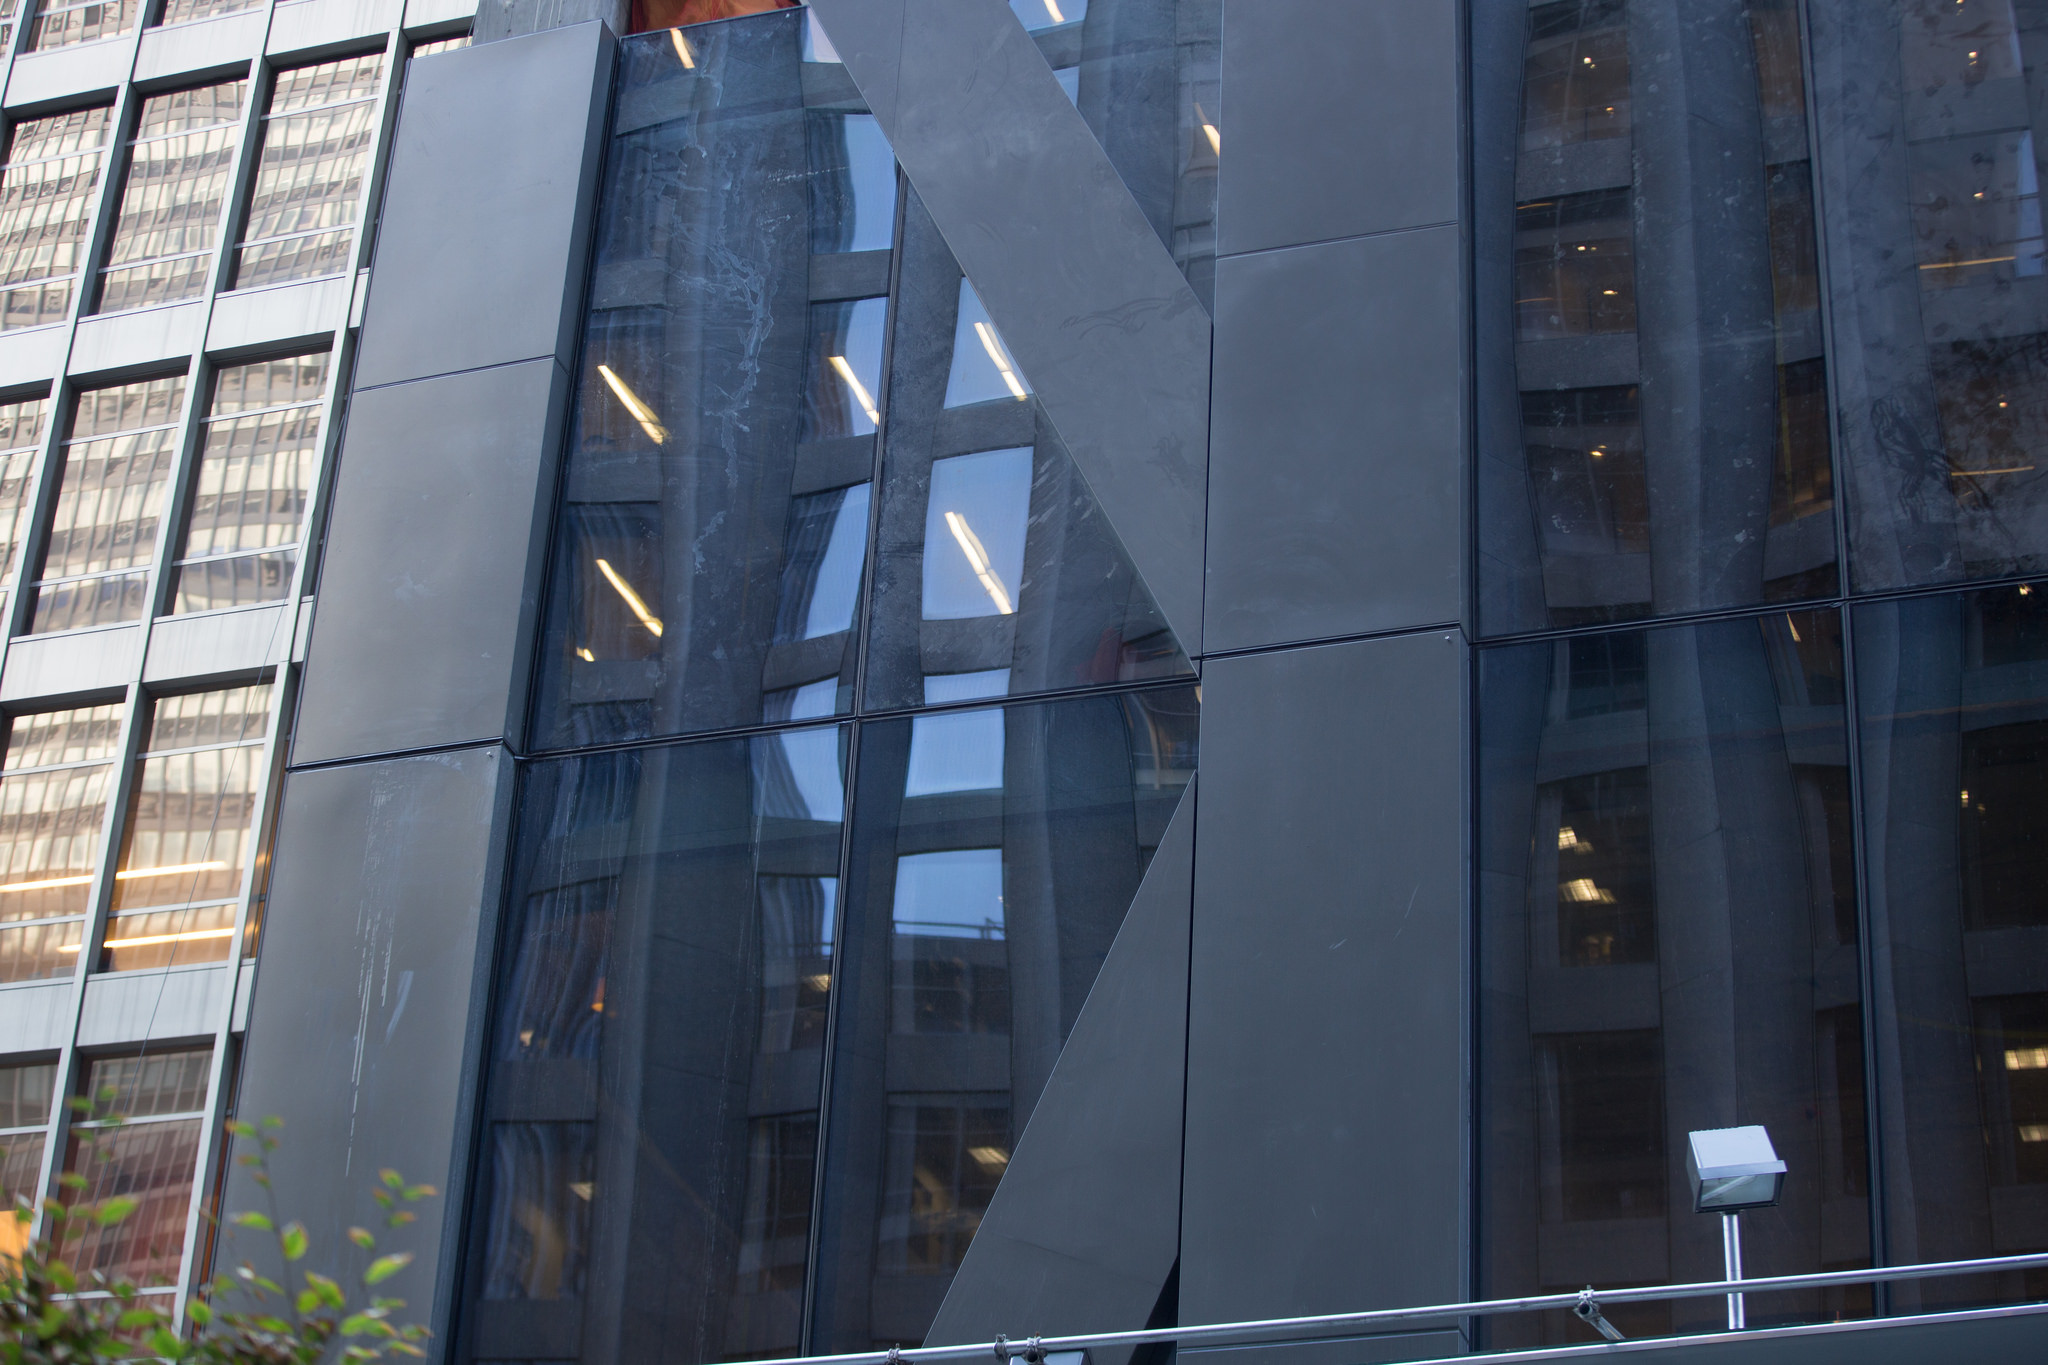 53 West 53rd Street, image by Kevin Leclerc/streetscaper